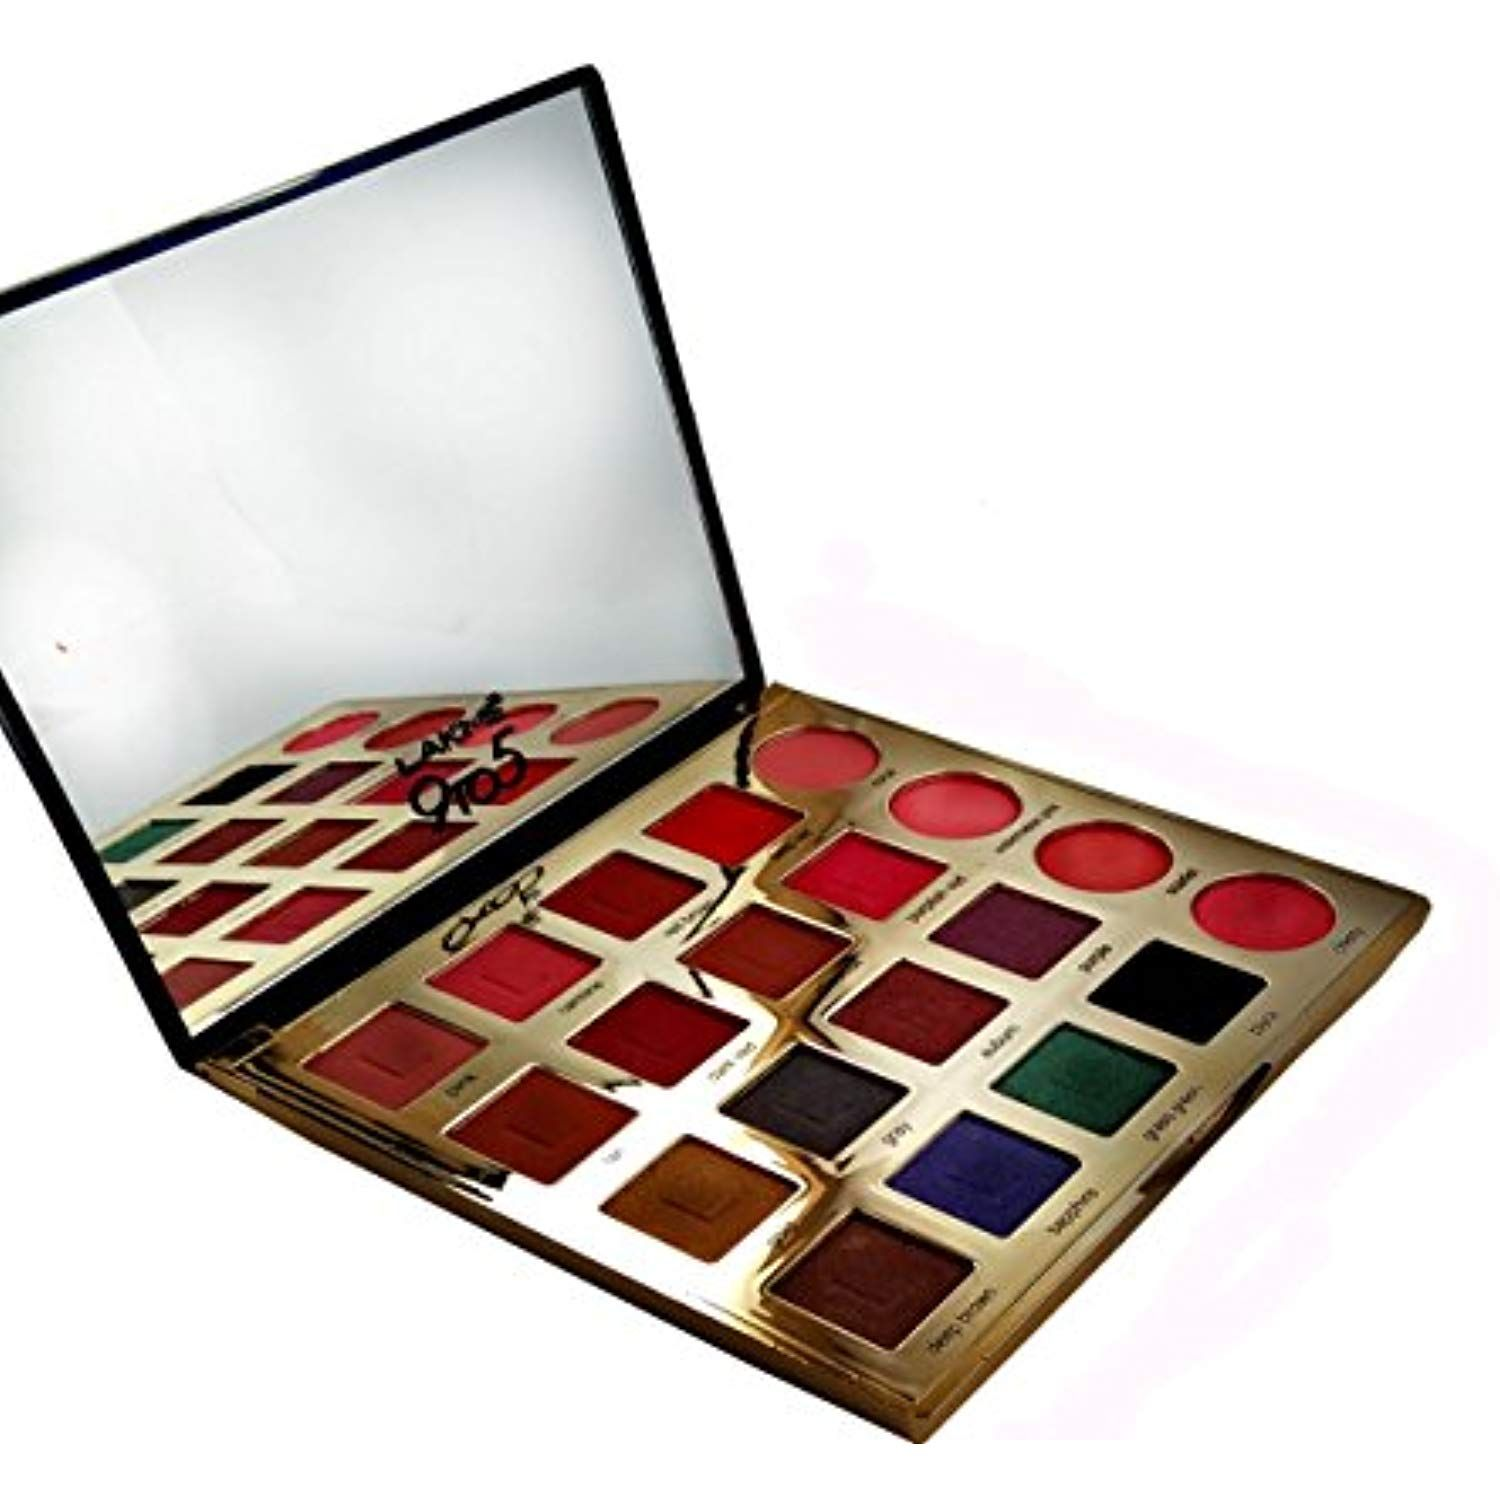 Lakme dazzling,makeup kit with eyeshadows with real